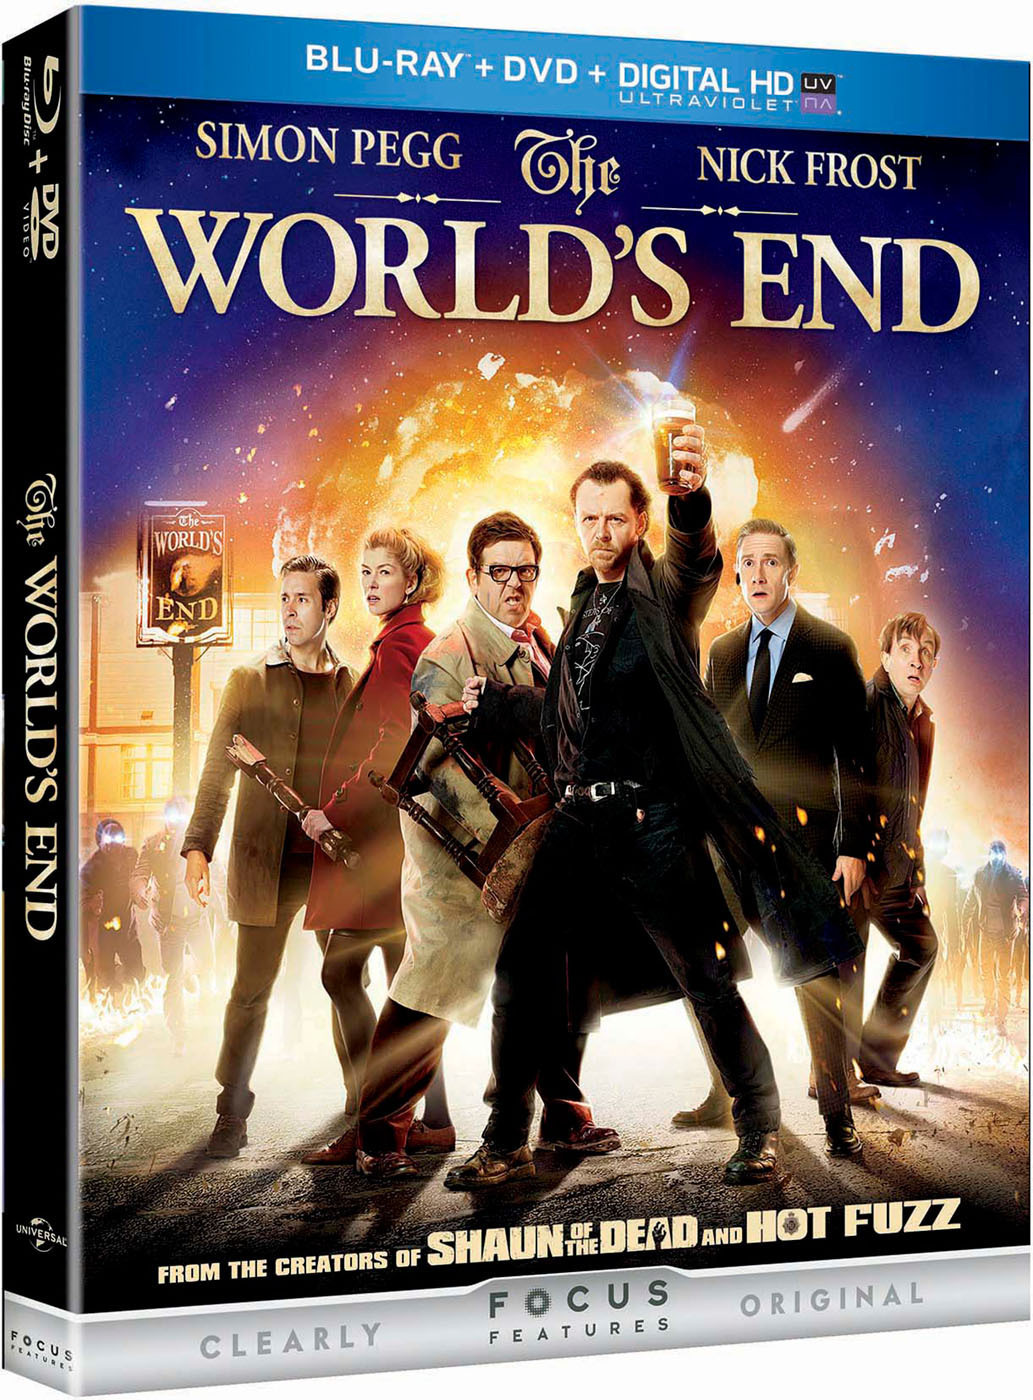 Simon Pegg Stars in THE WORLD'S END, Coming to Blu-ray Combo Pack 11/19